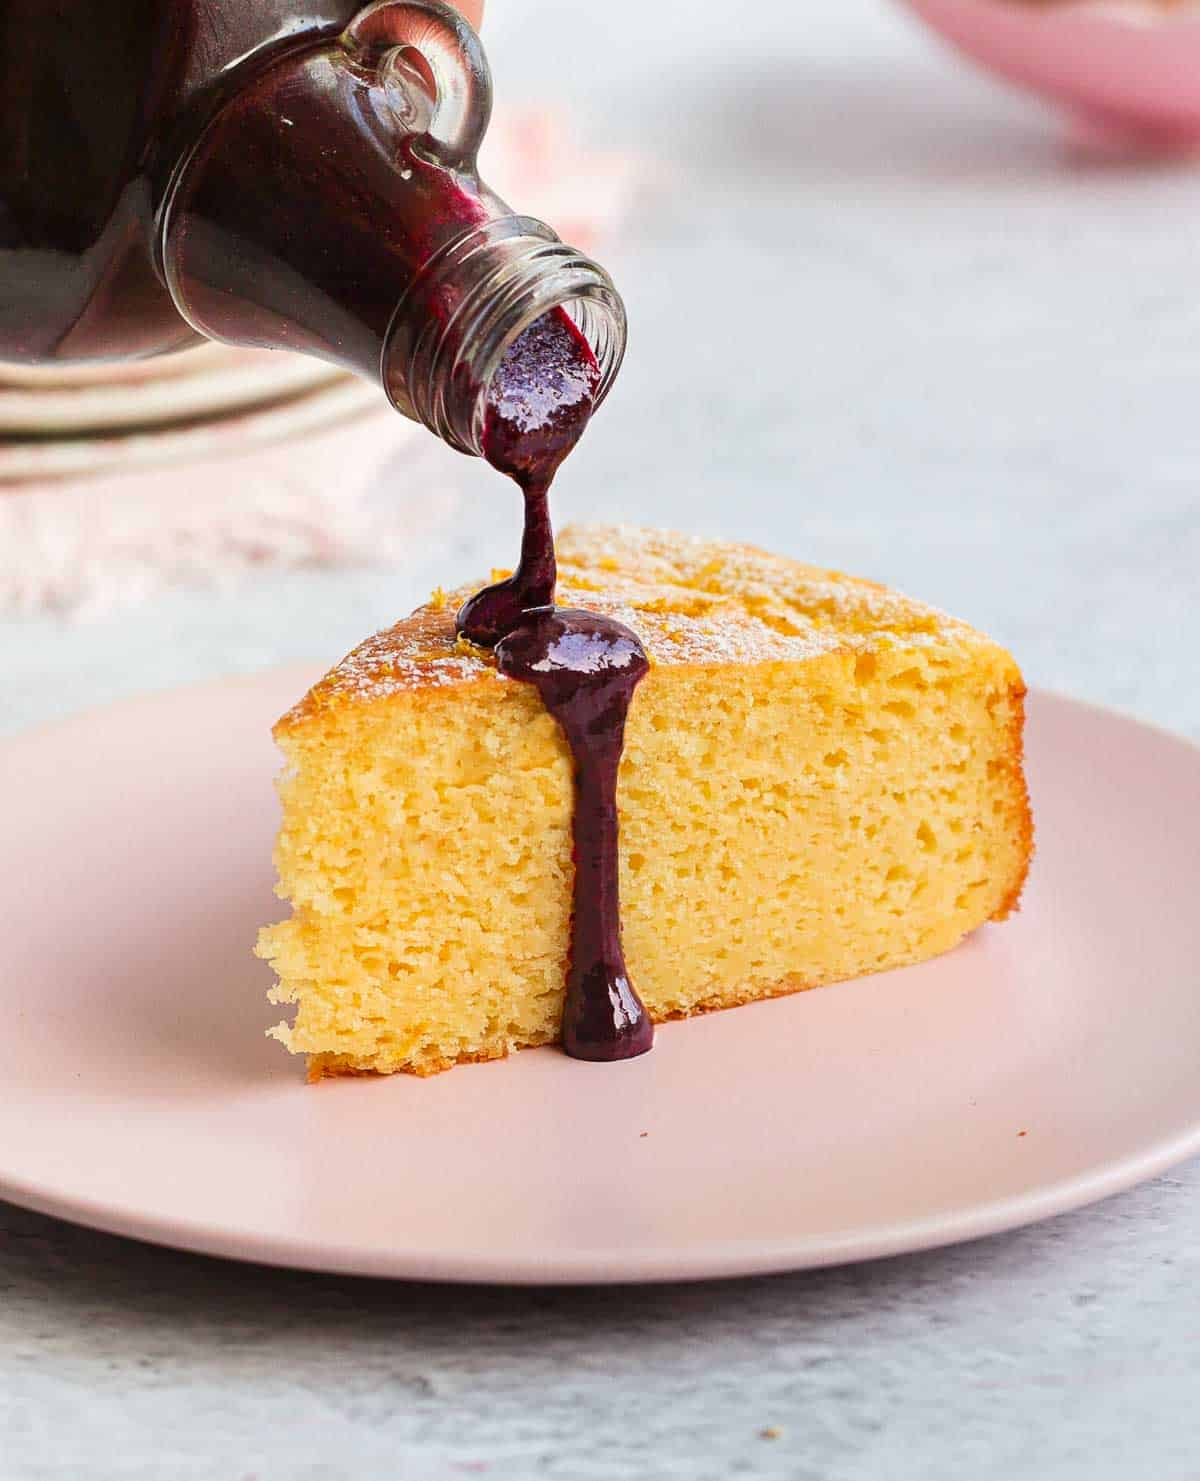 Pouring the coulis over a slice of cake.